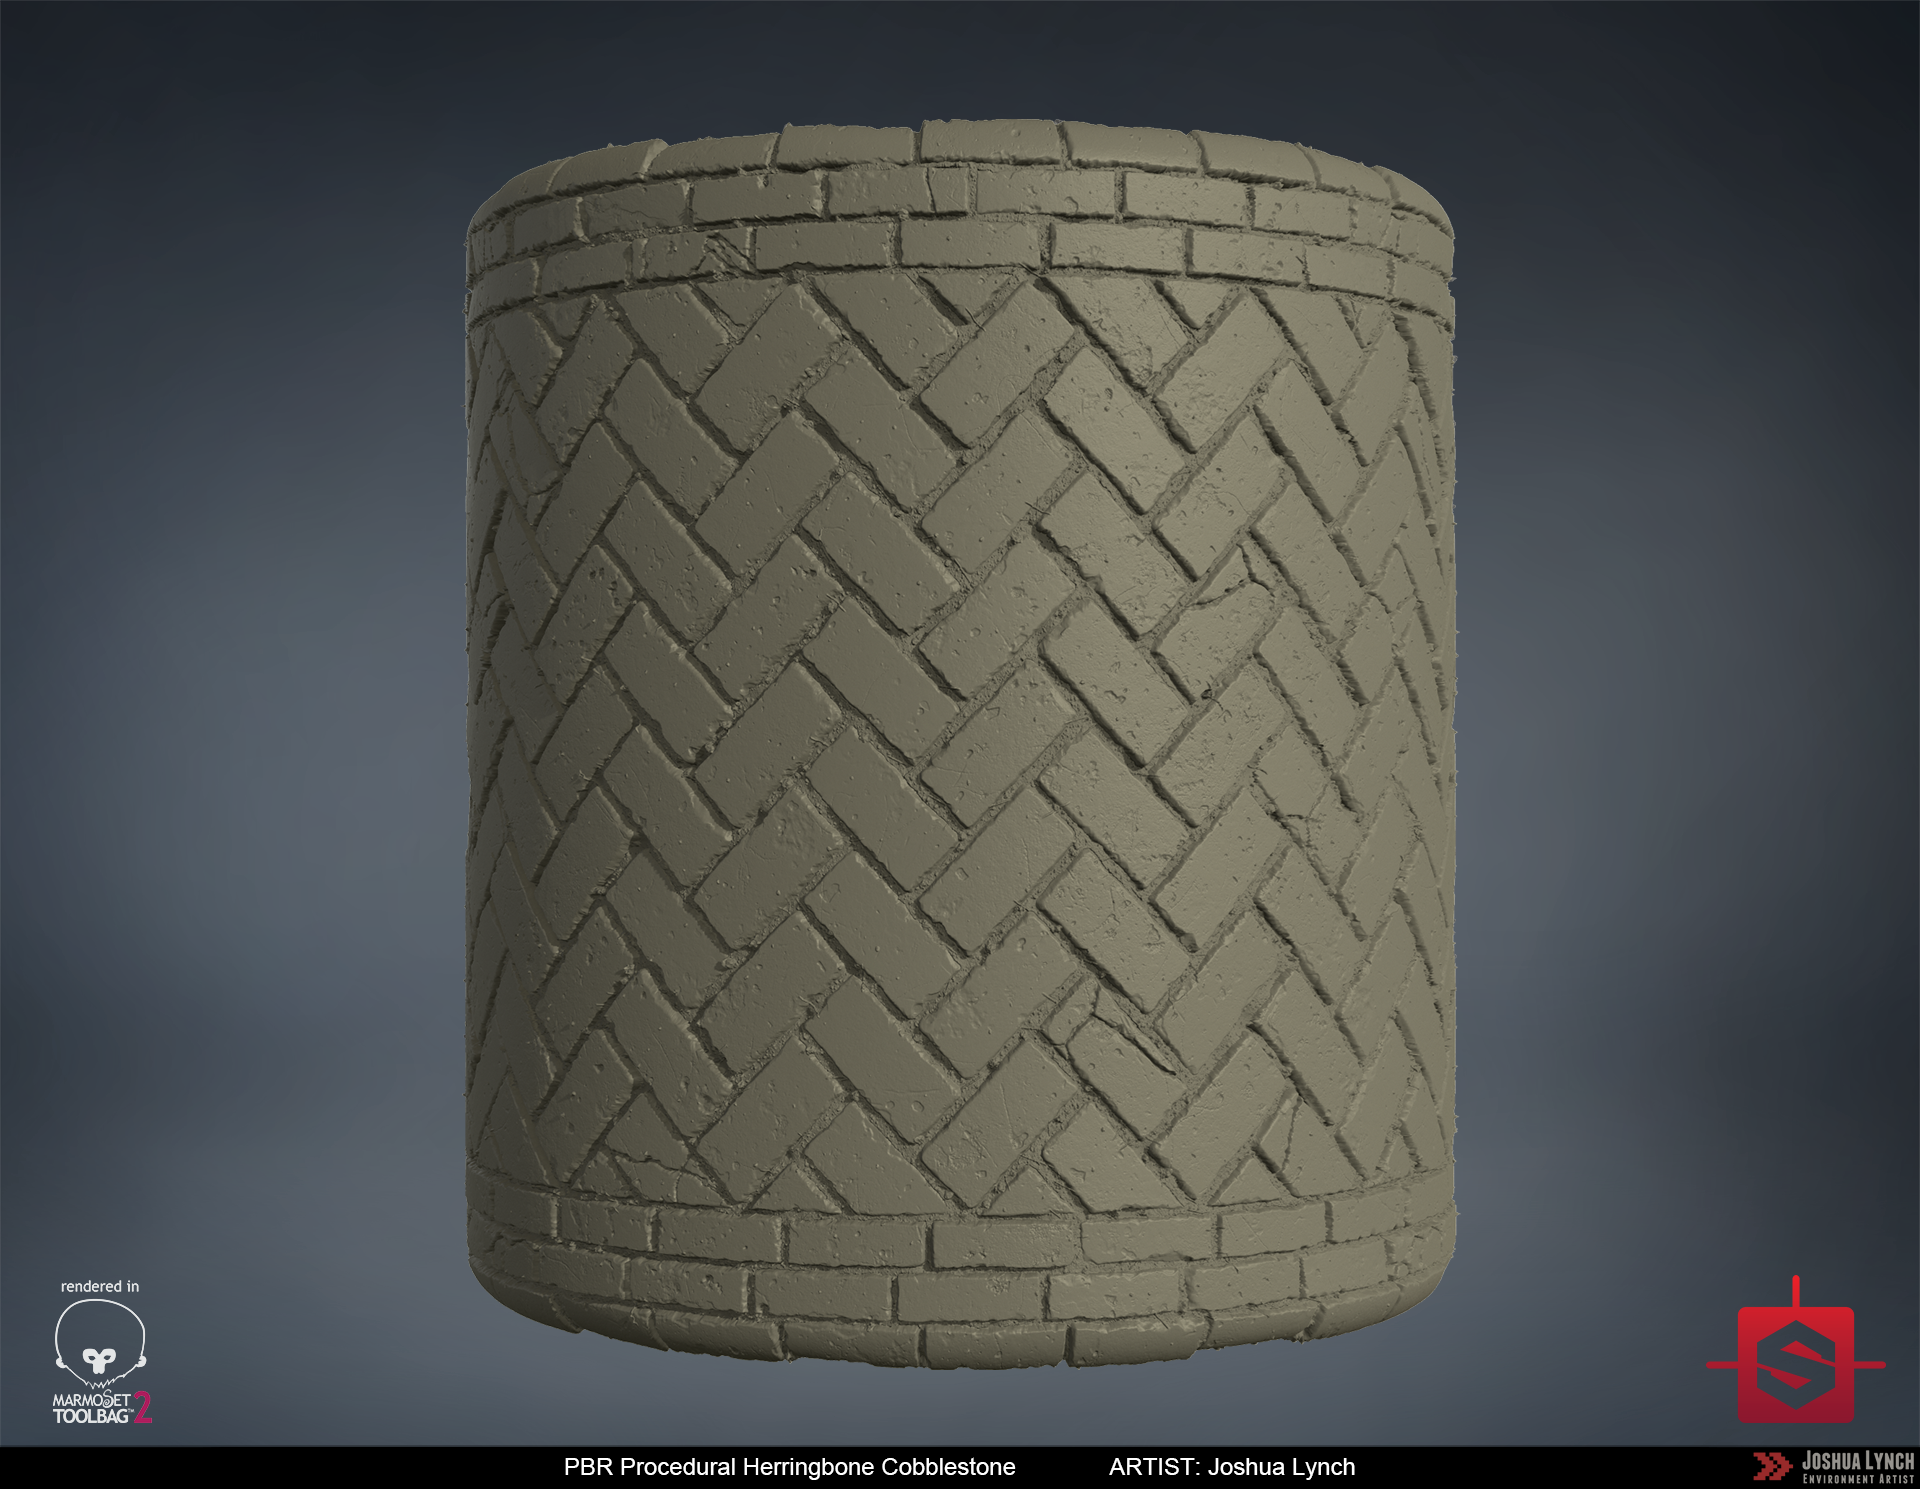 Floor_Cobblestone_Herringbone_Cylinder_Rev_01_Layout_Comp_Josh_Lynch.png